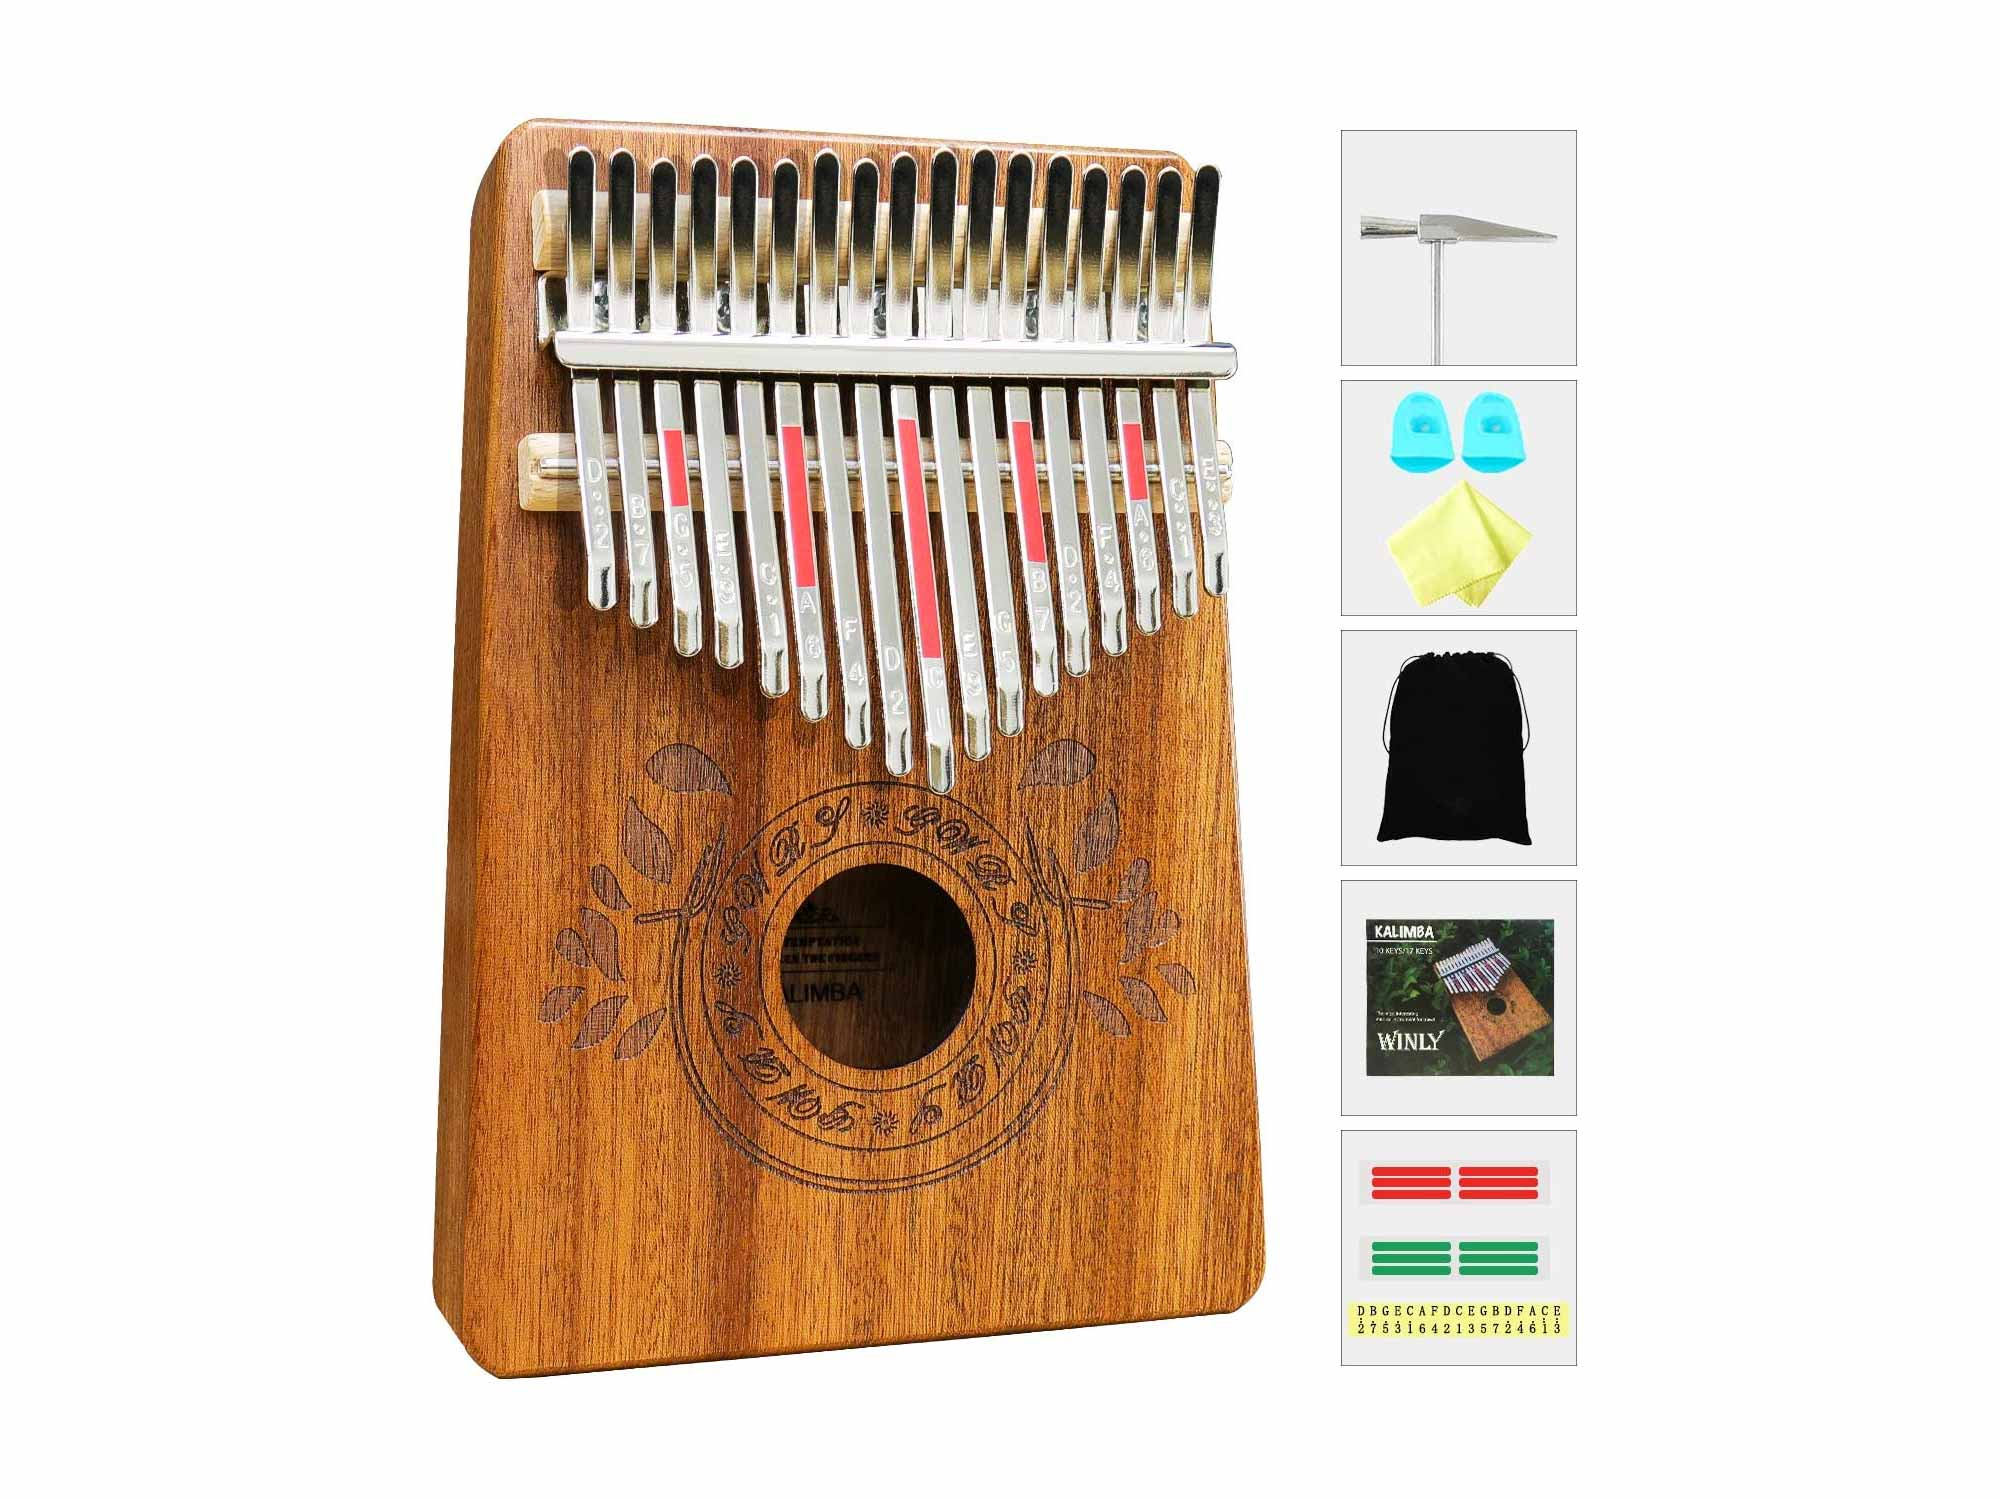 UNOKKI Kalimba 17 Keys Thumb Piano with Study Instruction and Tune Hammer, Portable Mbira Sanza African Wood Finger Piano, Gift for Kids Adult Beginners Professional